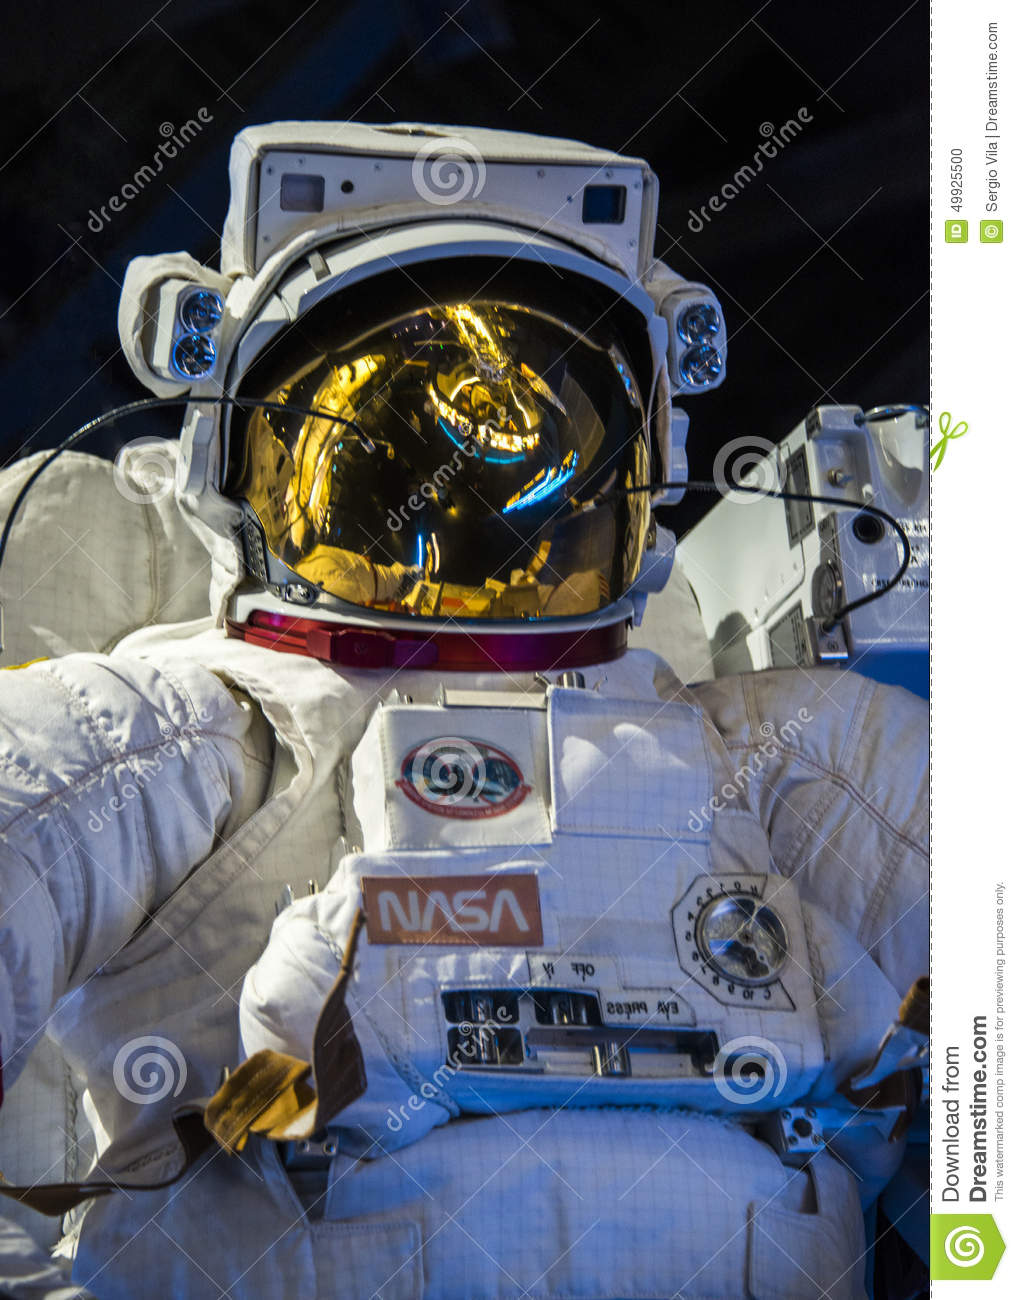 nasa space suit design waste collection - photo #20